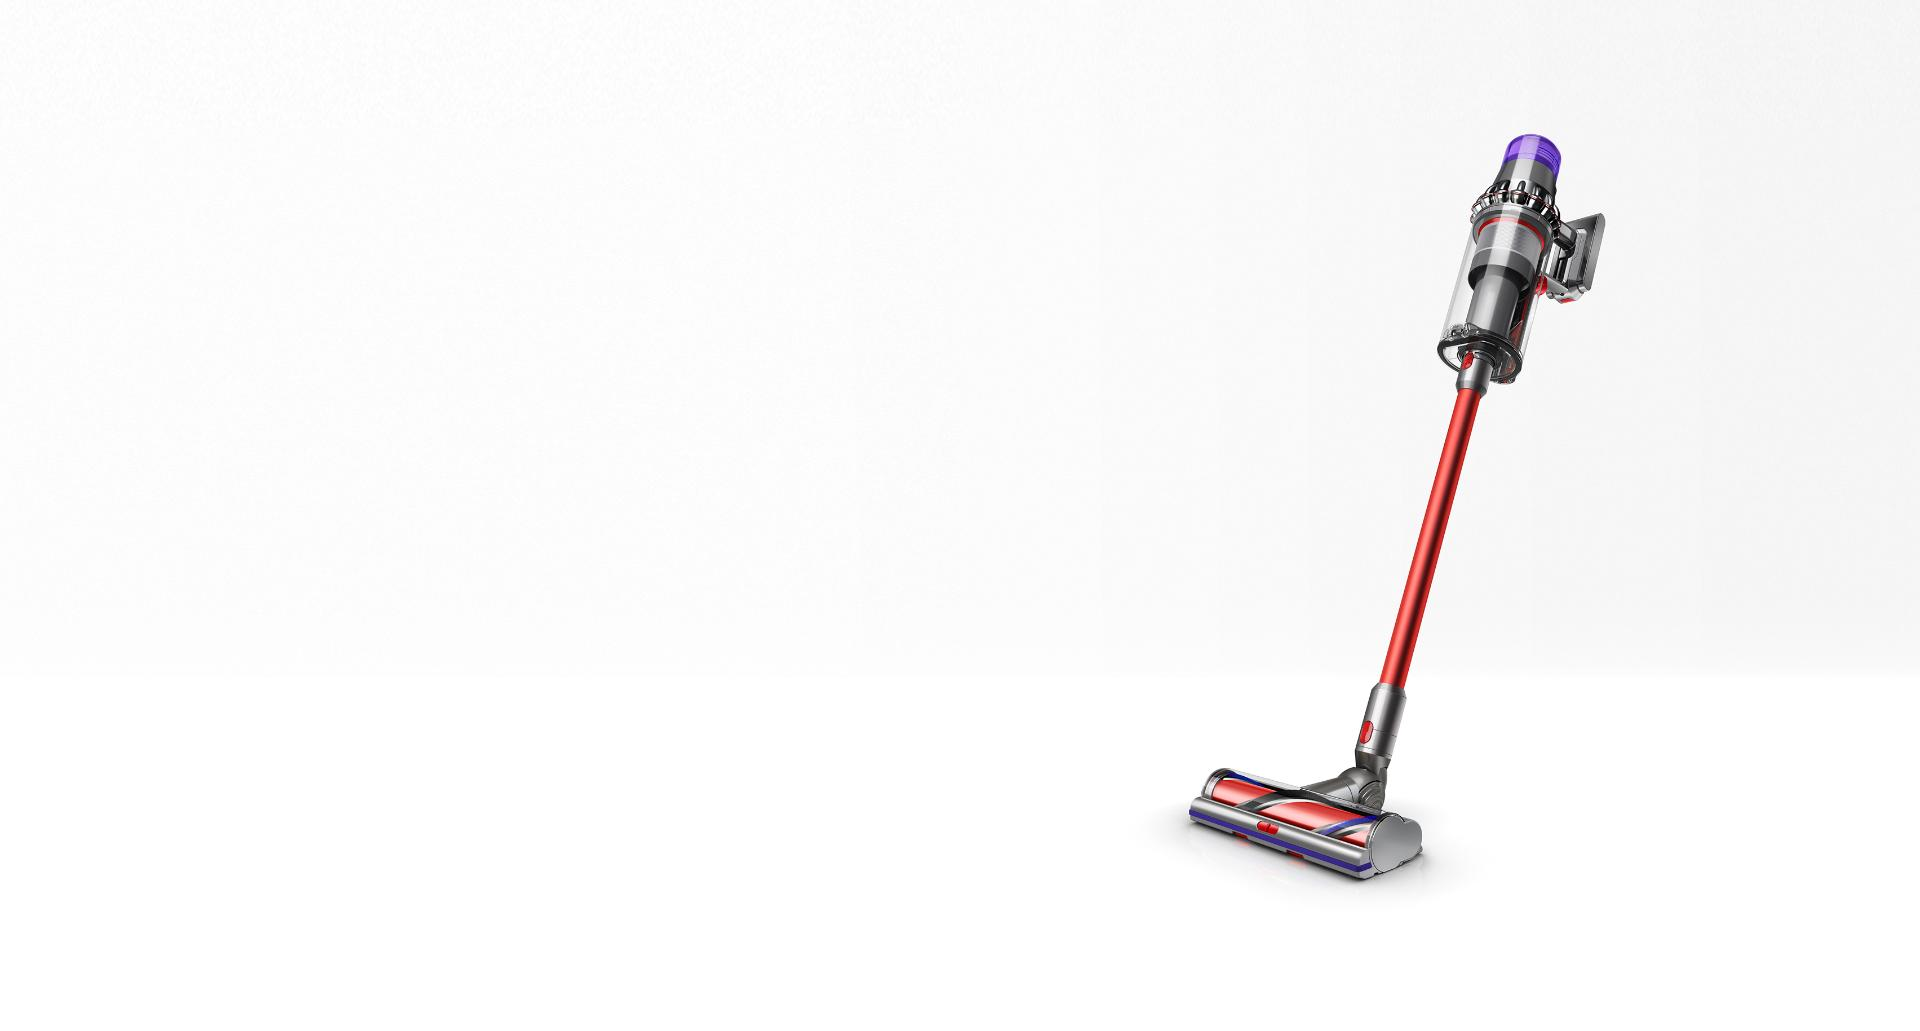 Dyson V11™ Outsize cordless vacuum cleaner